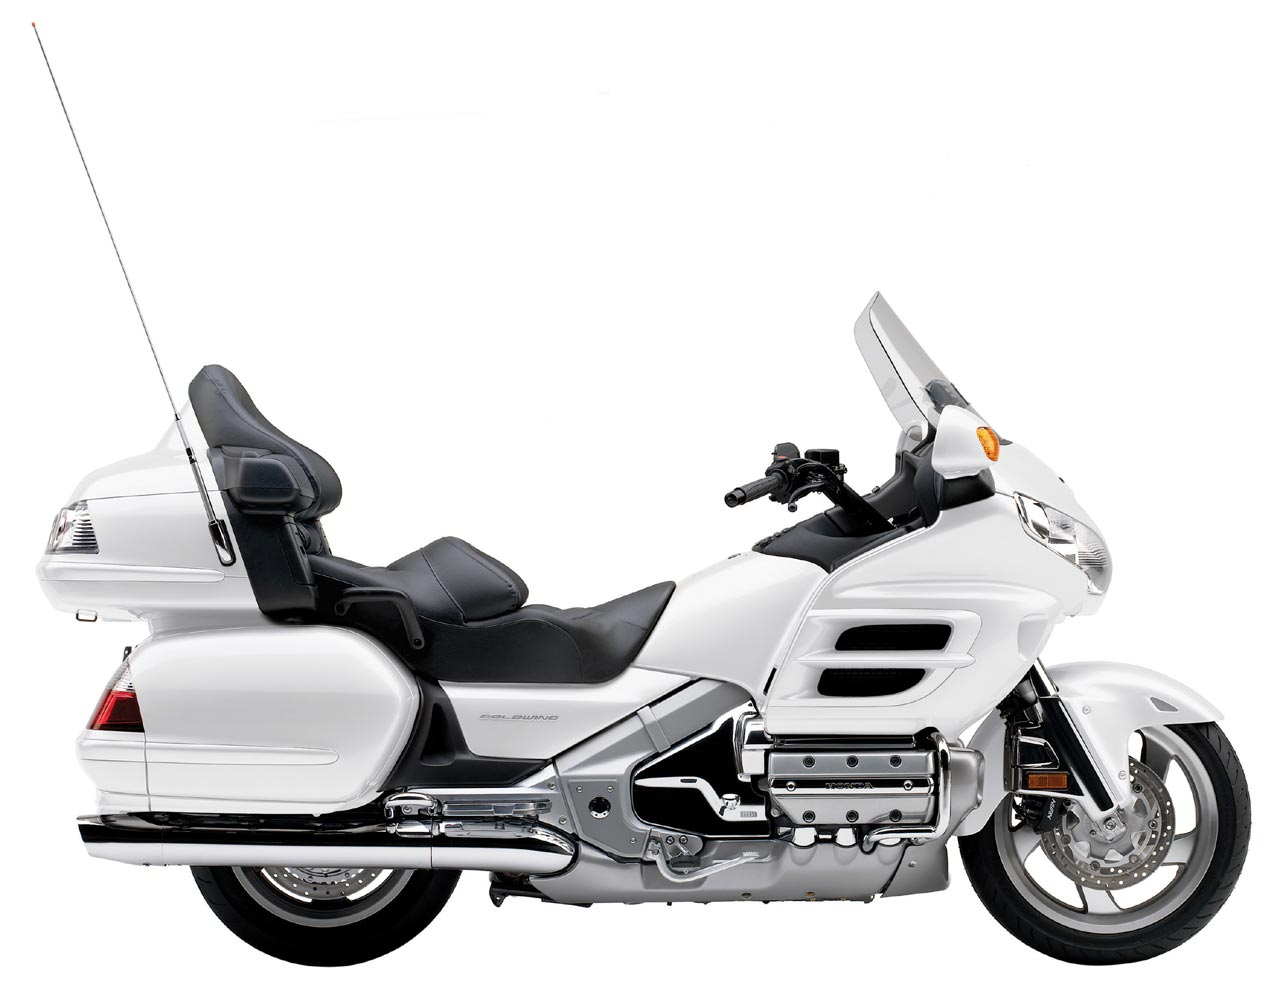 total motorcycle website 2006 honda gold wing rh totalmotorcycle com 2006 Honda Goldwing Trike Motorcycles Sale 2006 honda gl1800 service manual